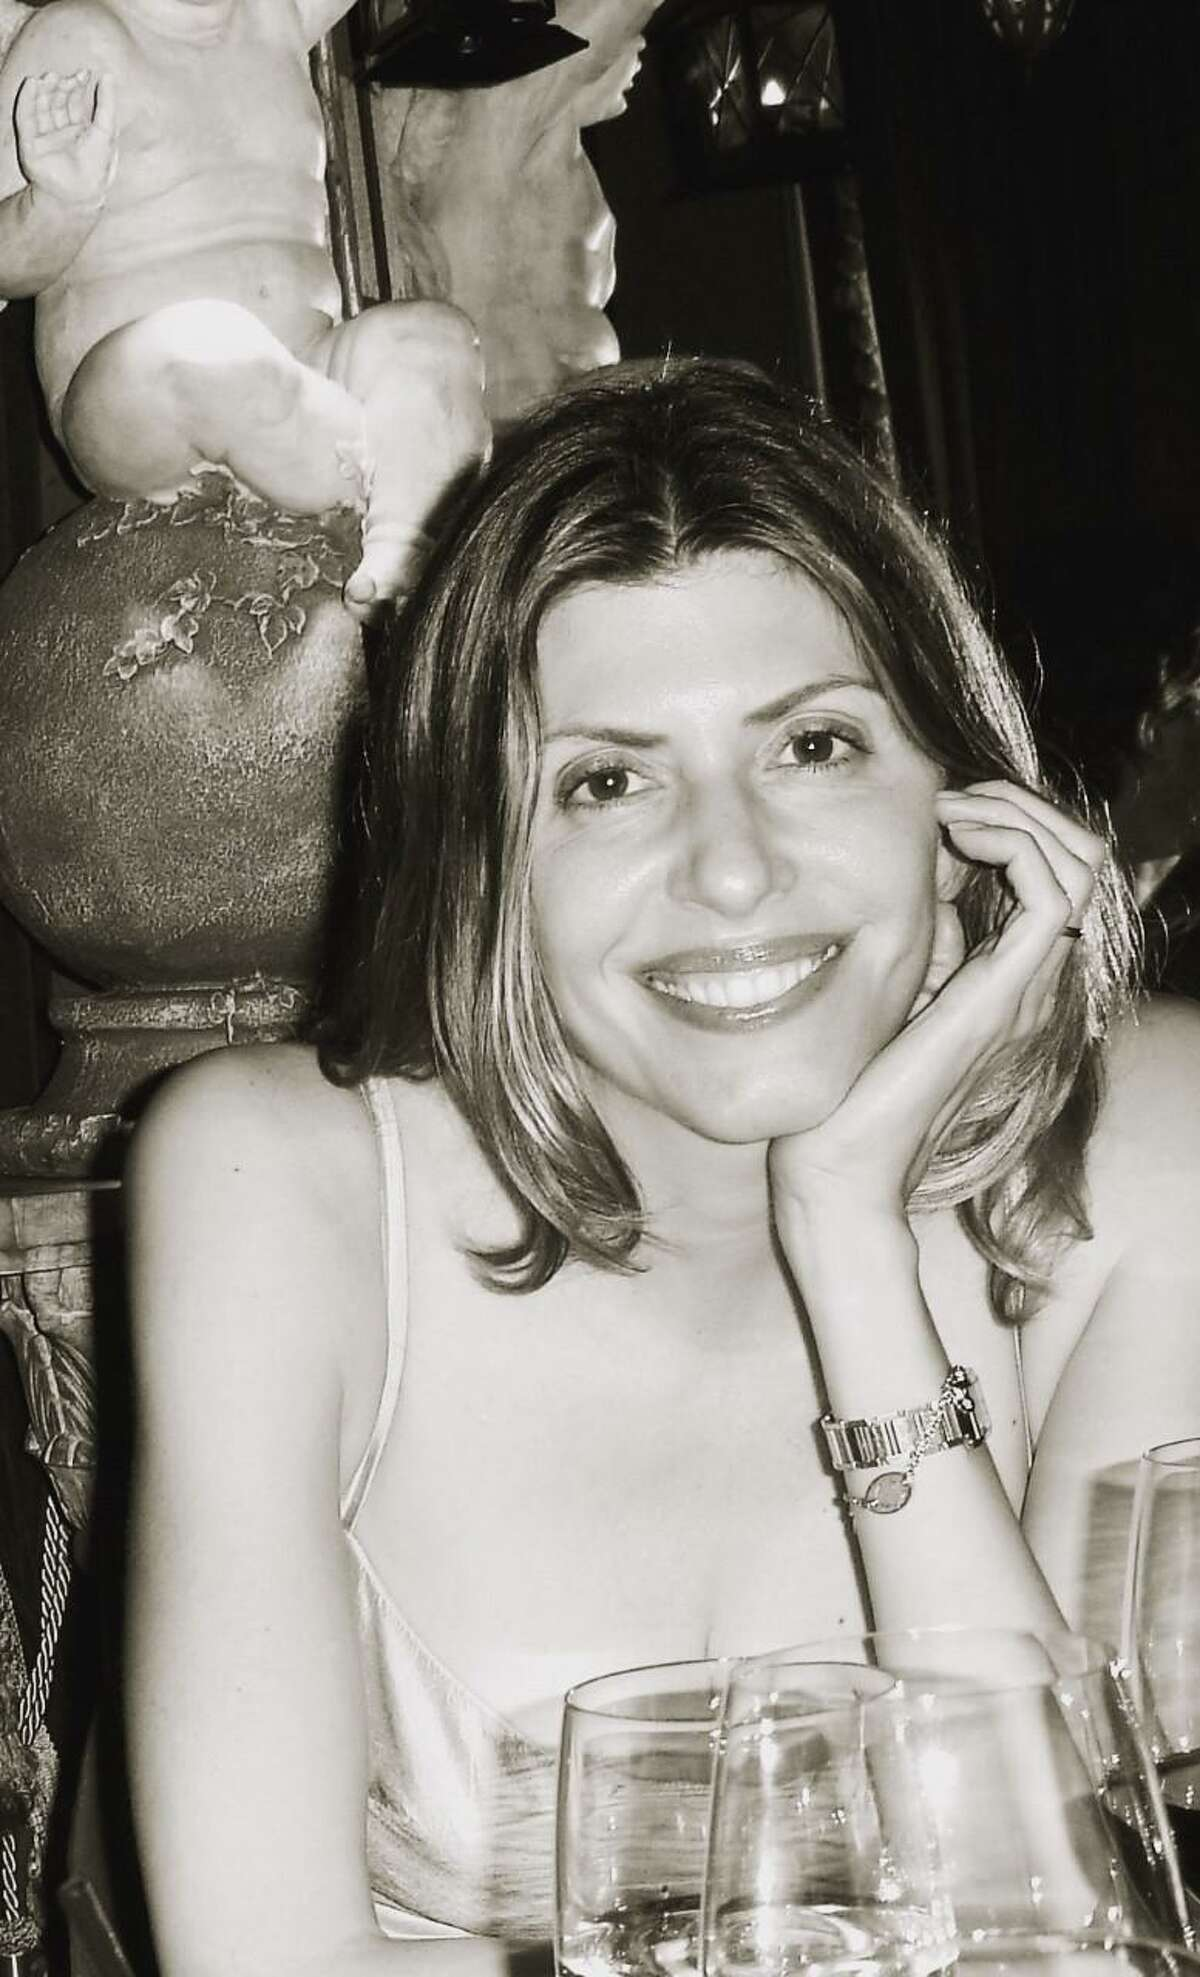 Jennifer Dulos, 50, has been the subject of a search by New Canaan and State Police since she was reported missing Friday evening, May 24, 2019.